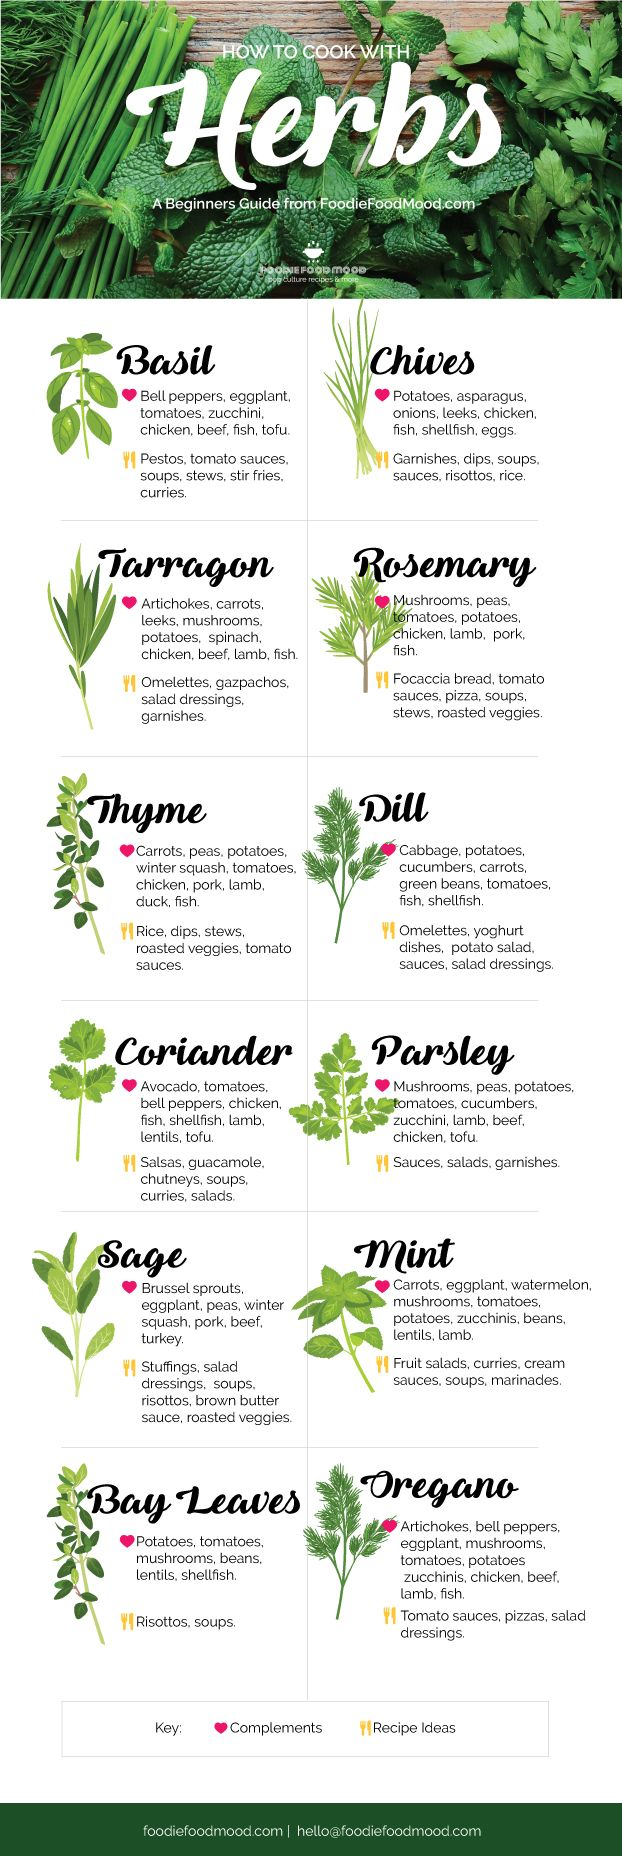 How to Cook with Herbs #cookingtips